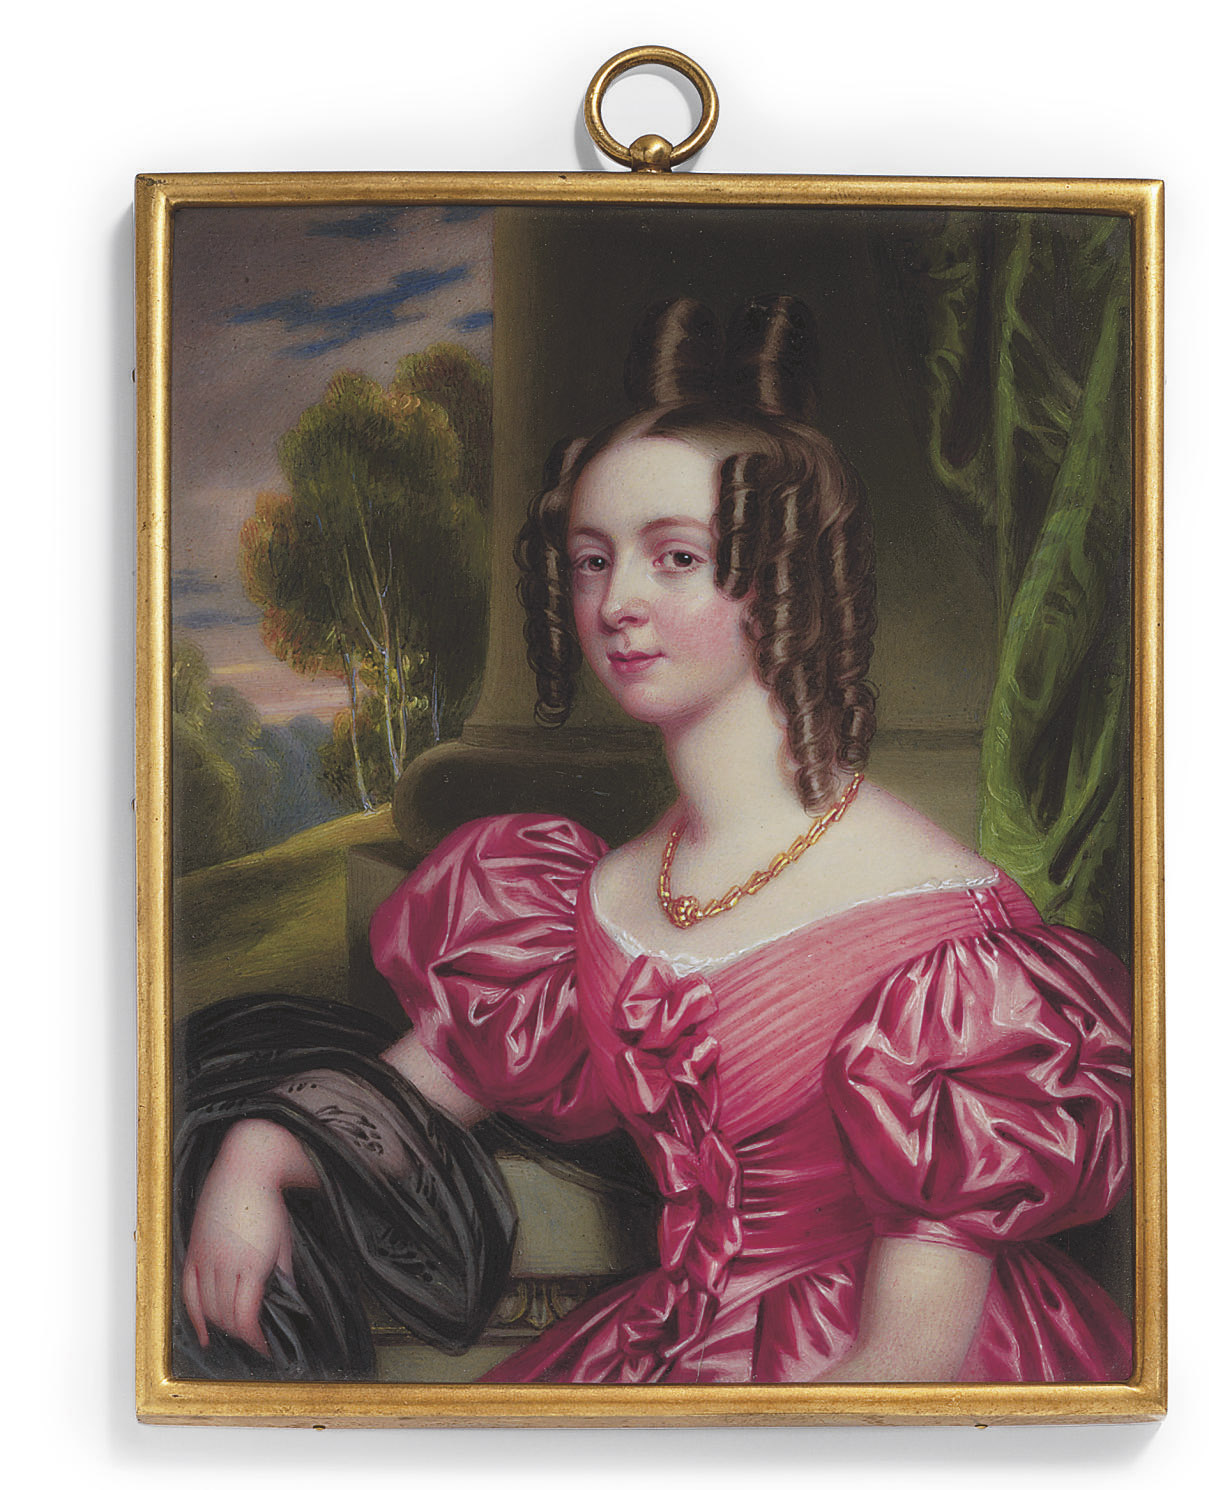 Caroline Lavinia Lyttelton (1816-1902), seated, in pink dress with puffed sleeves, bows adorning the bodice, a black lace wrap draped over her right arm, wearing a gold necklace, dark hair dressed in ringlets; landscape, pillar and emerald-green curtain background